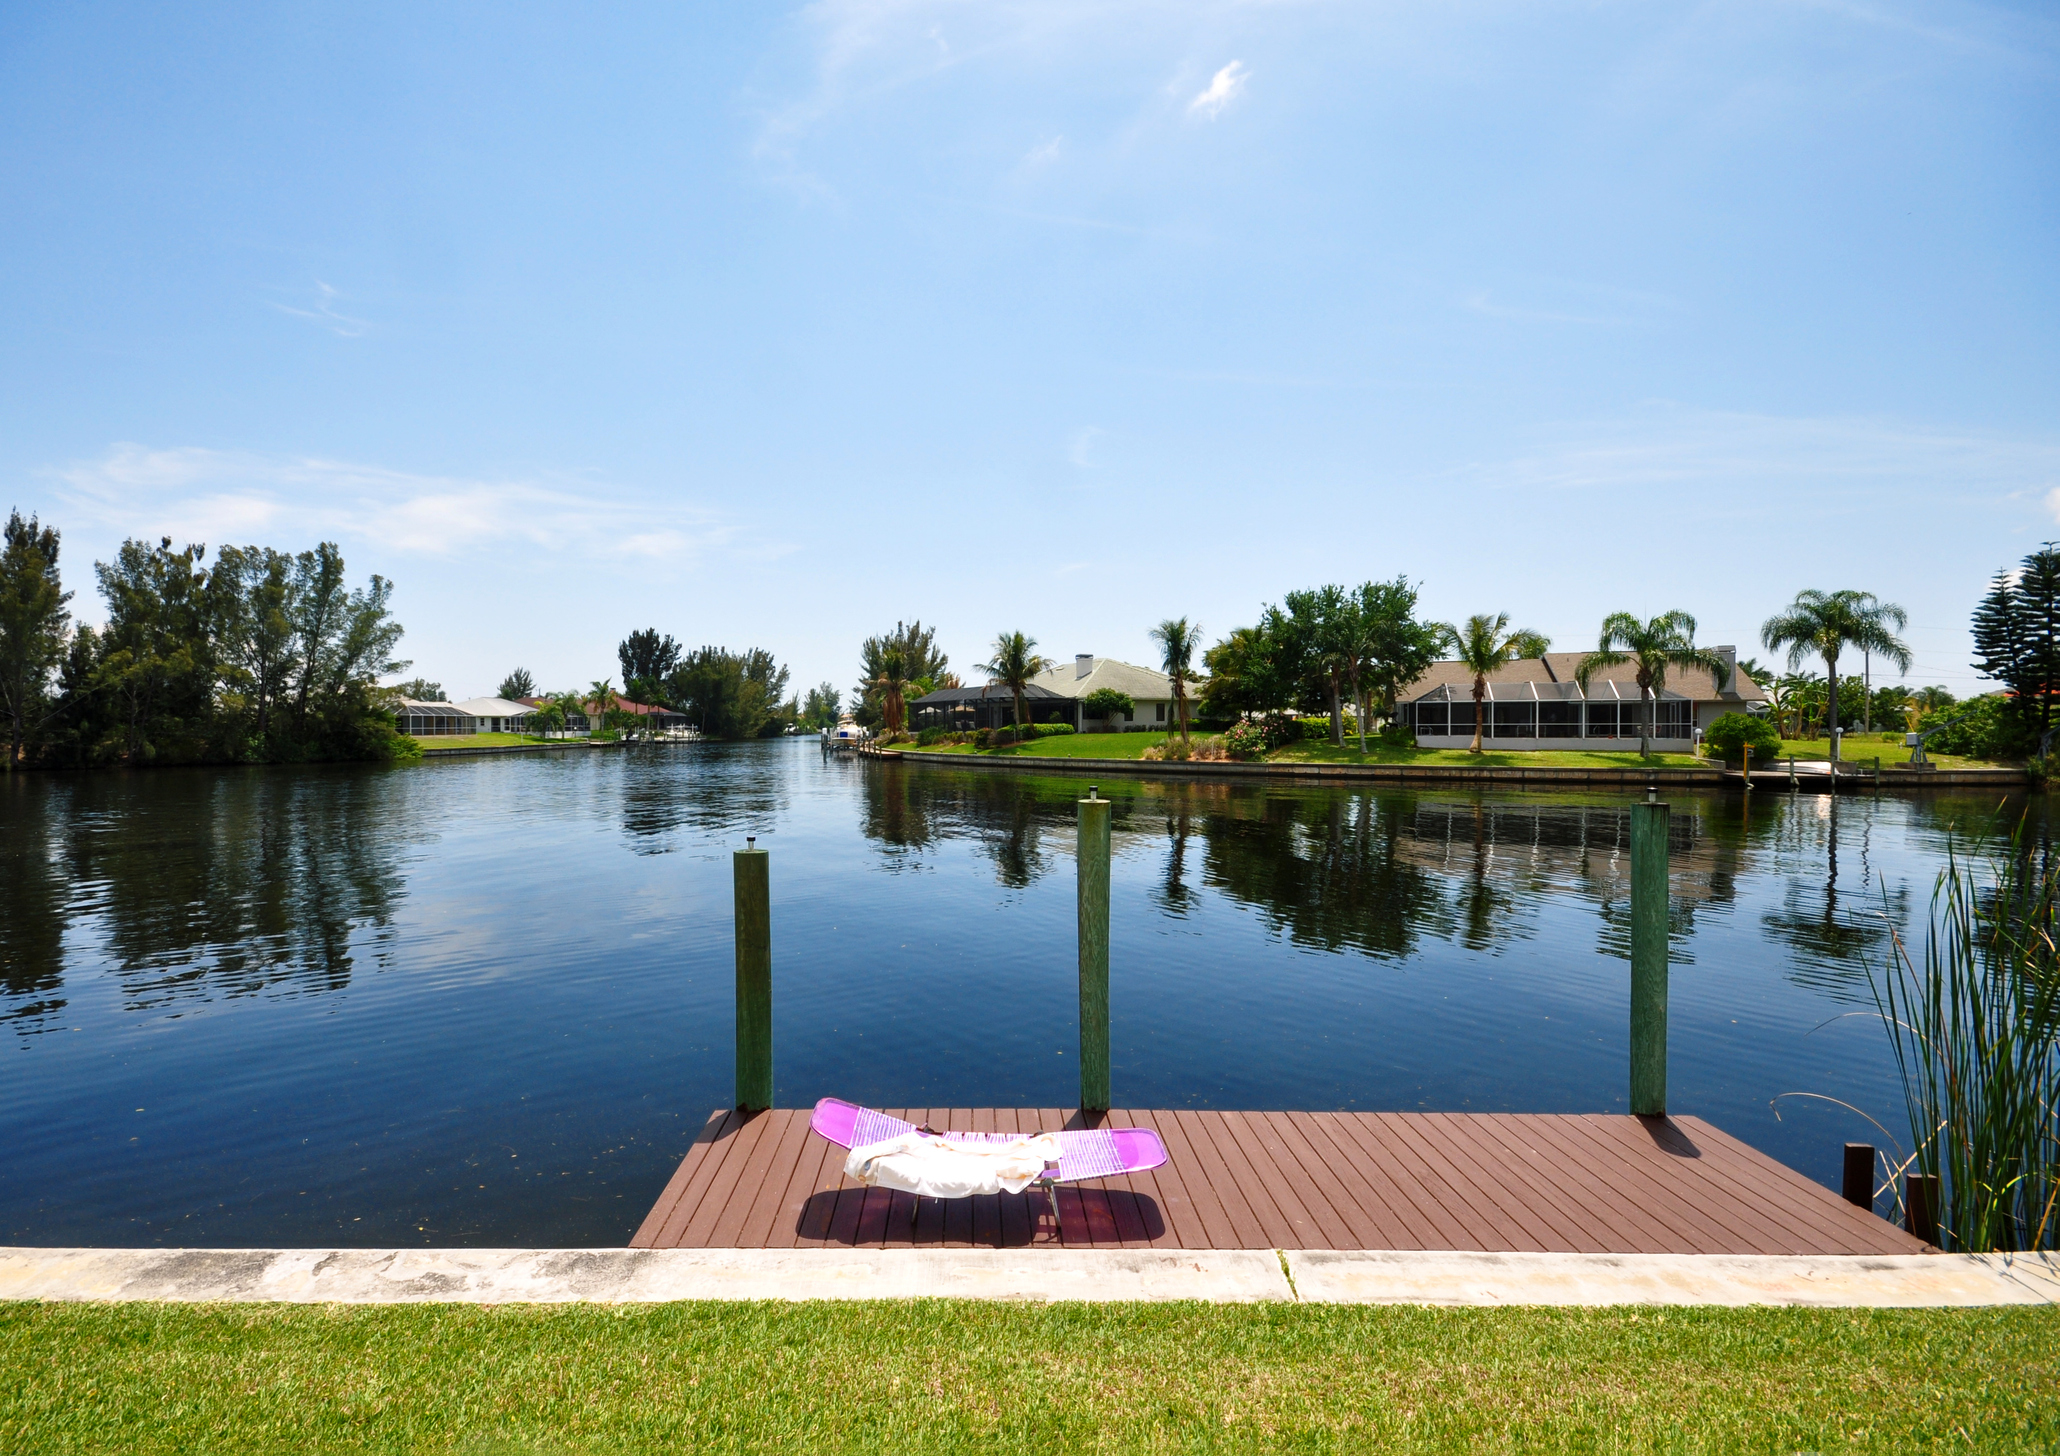 Things To Do In Cape Coral Florida